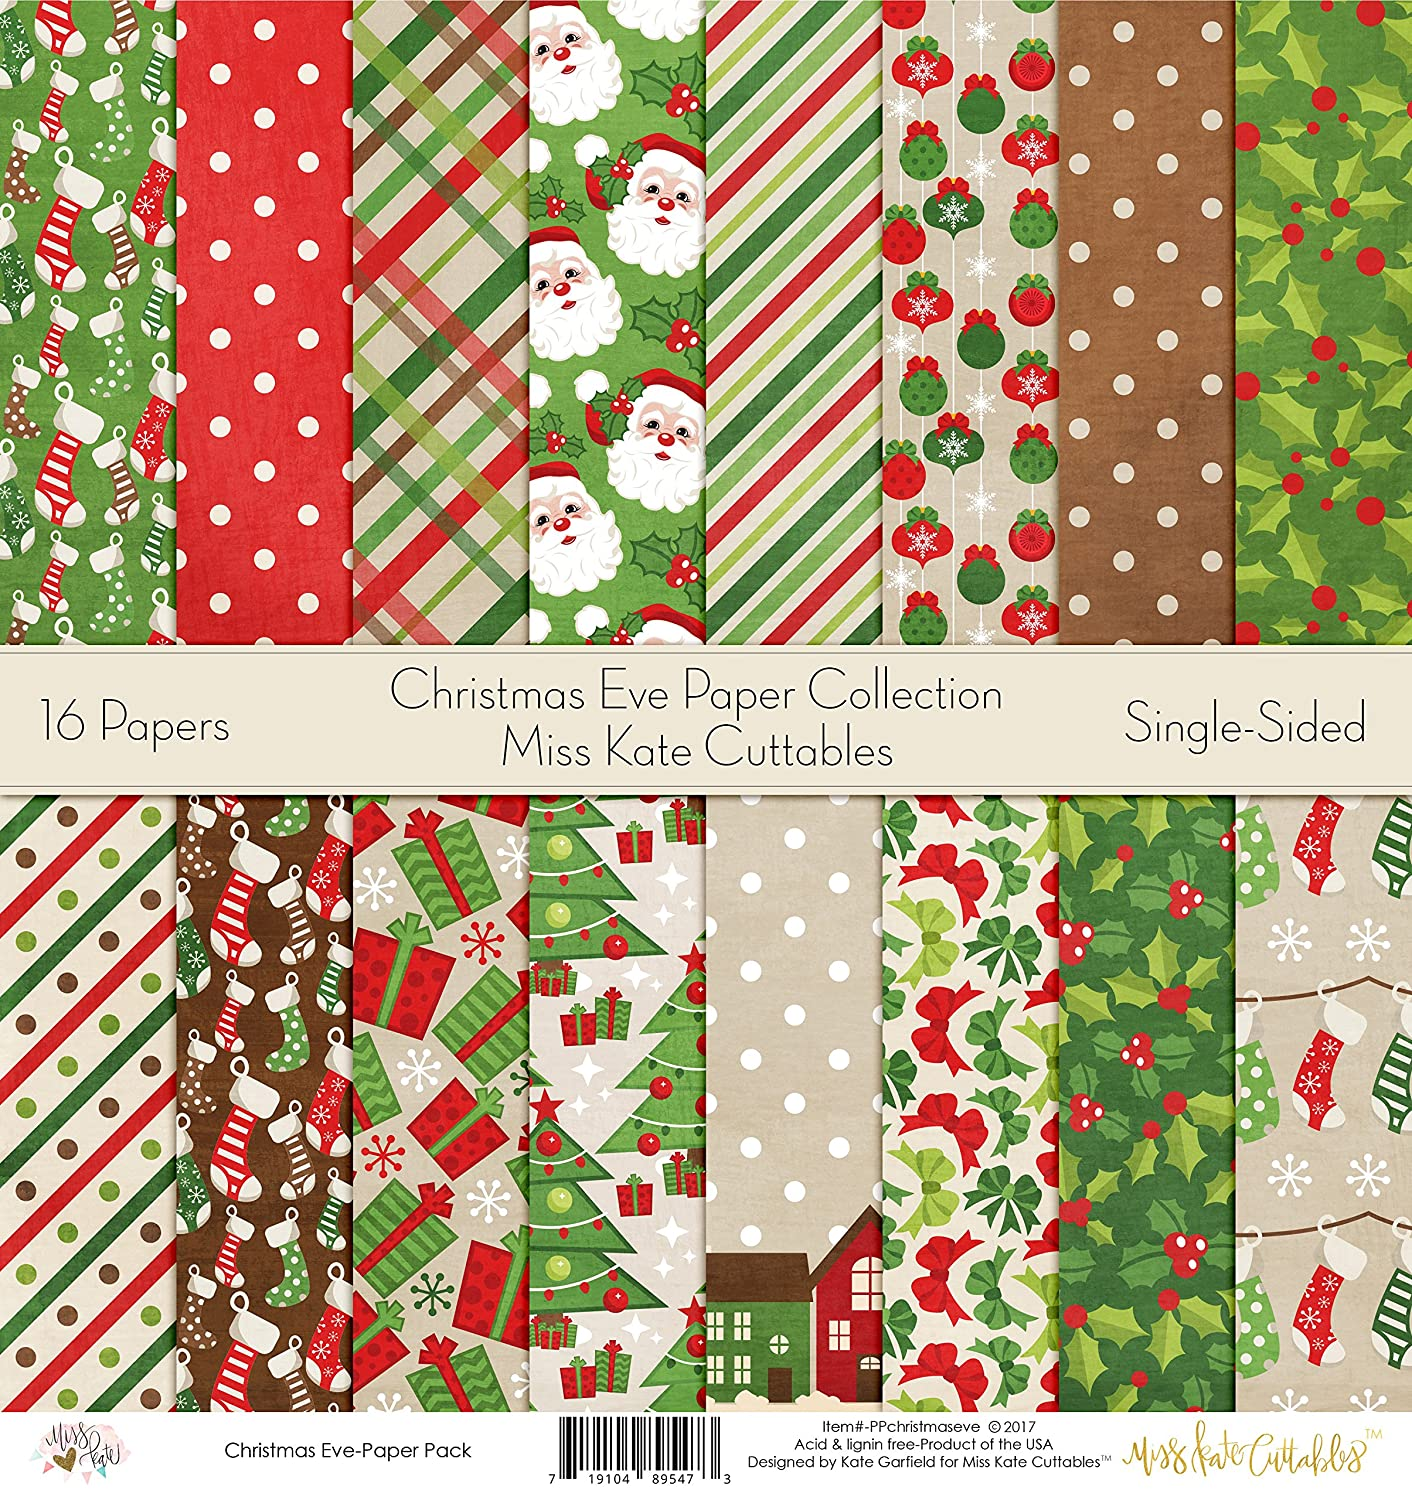 Pattern Paper Pack - Christmas Eve - Scrapbook Card Stock Single-Sided 12x12 Collection Includes 16 Sheets - by Miss Kate Cuttables